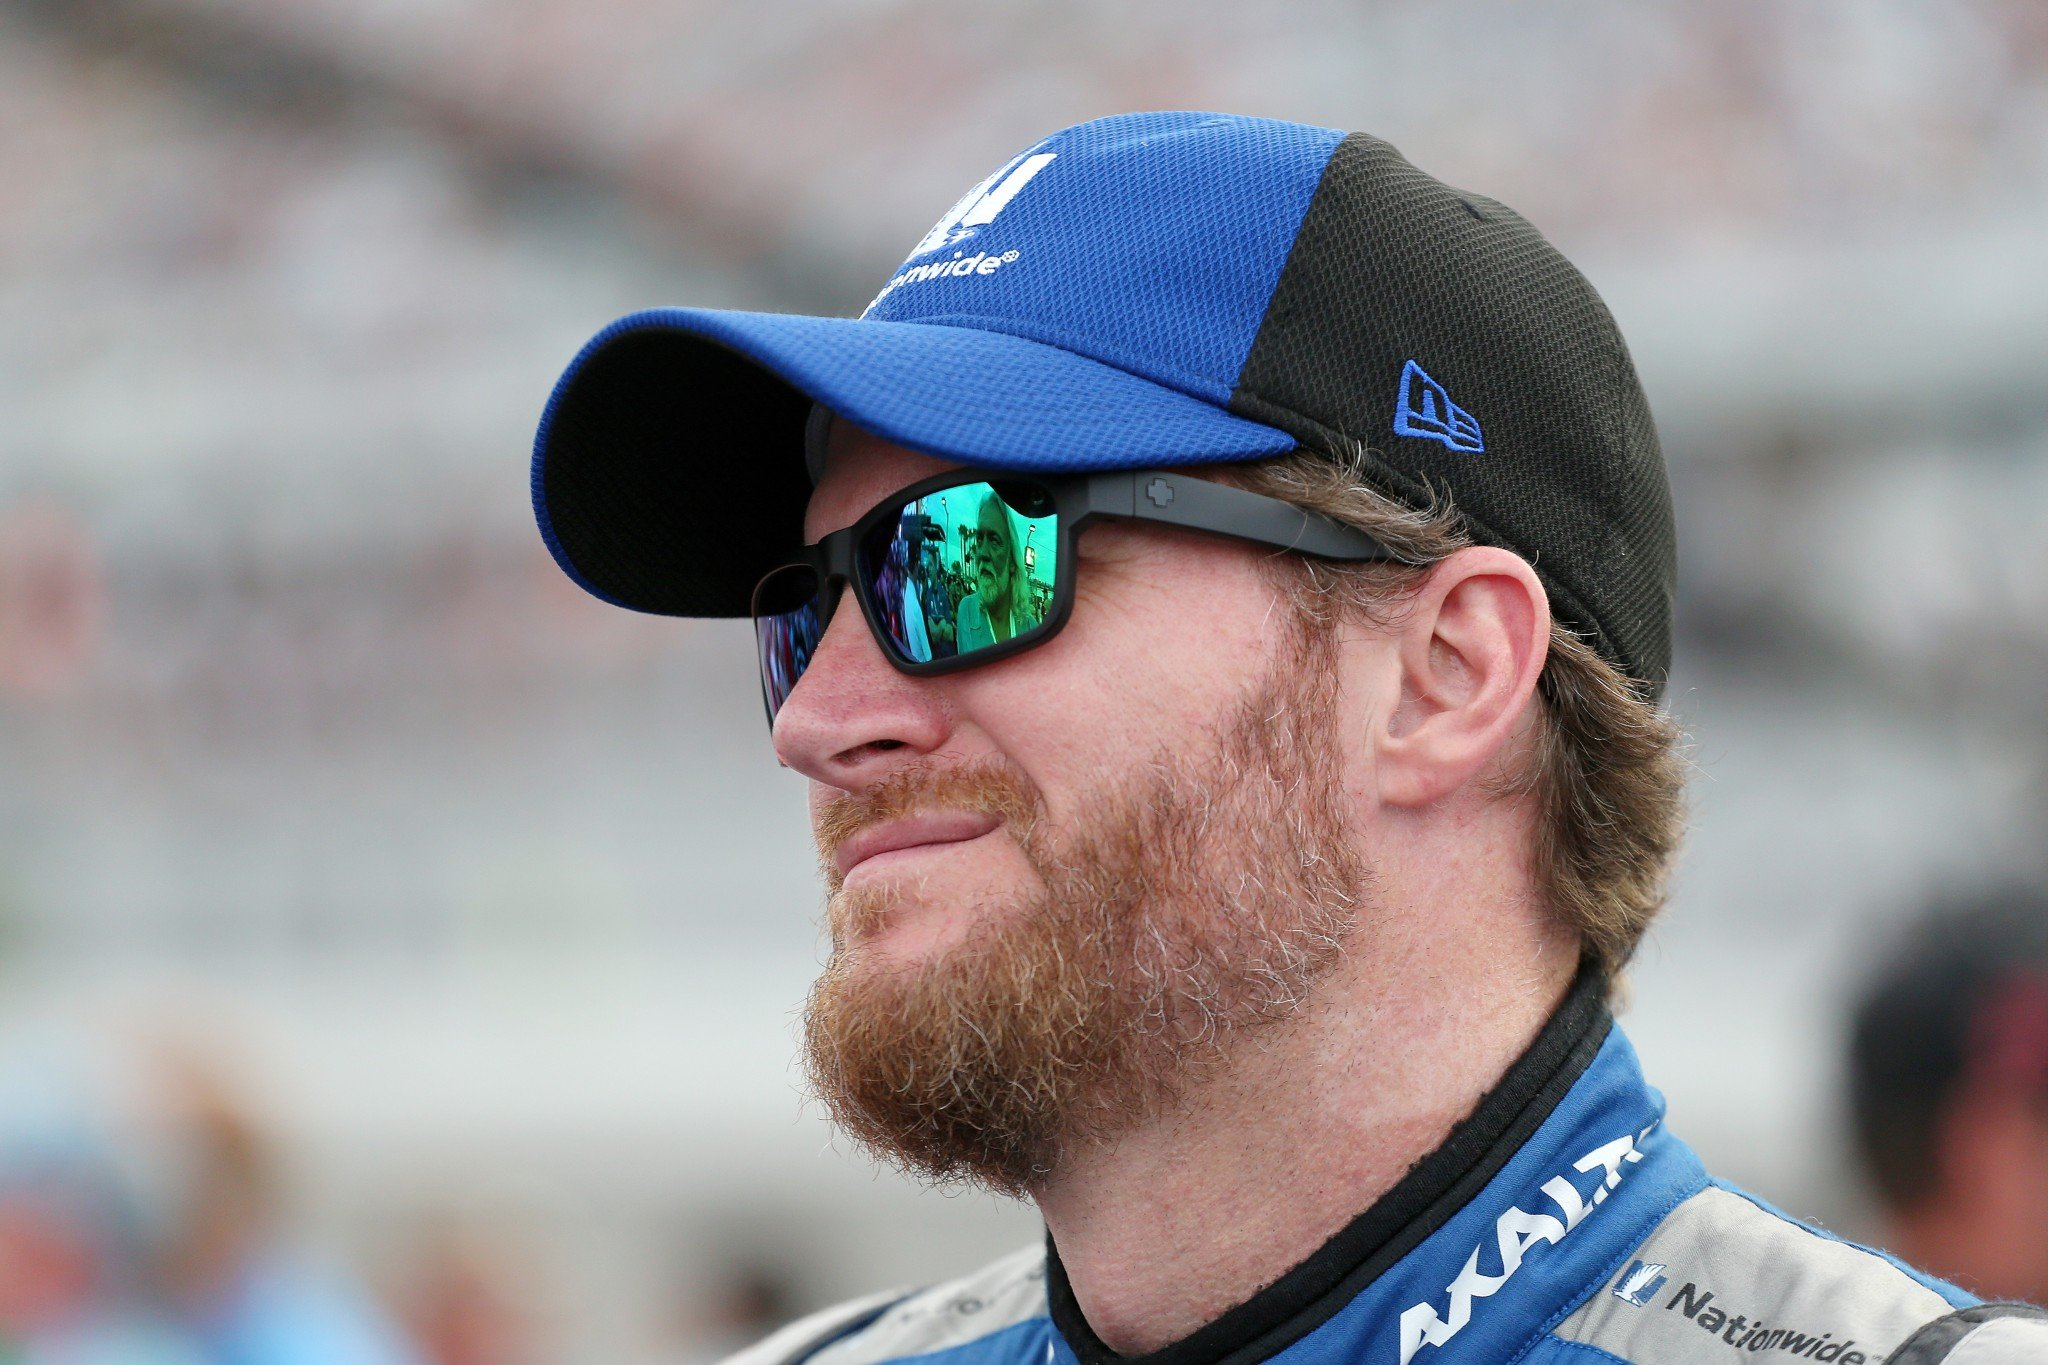 Dale Earnhardt Jr. will miss at least five races after his concussion (Getty Images).